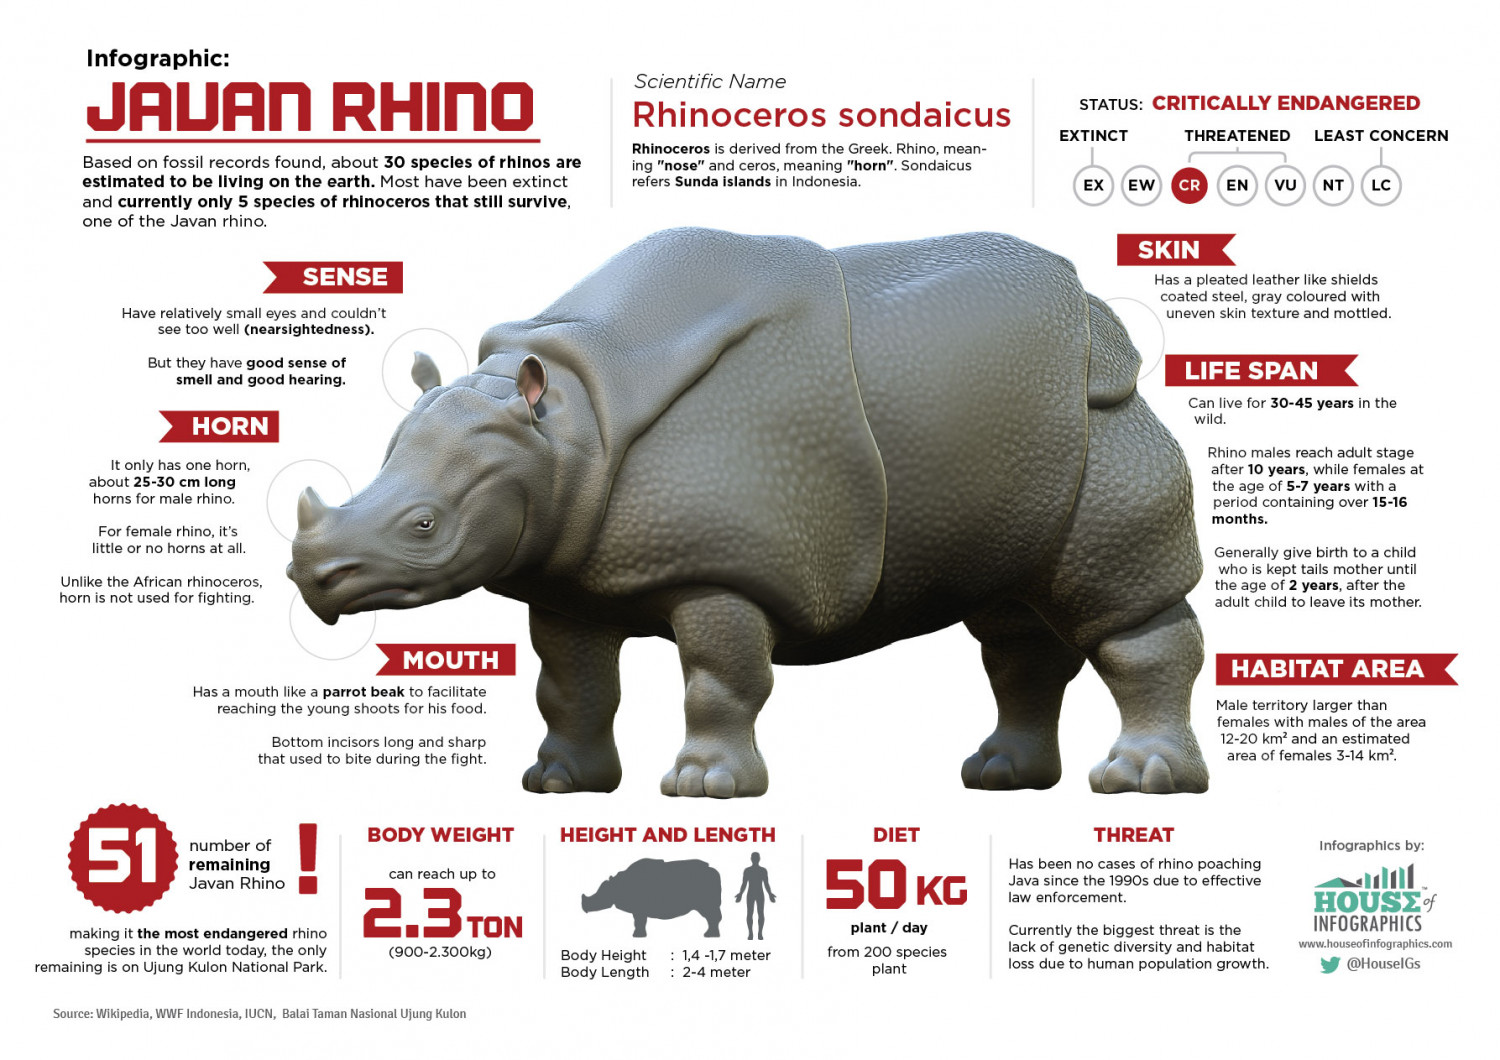 13 Things You Might Not Know About Javan Rhino Infographic